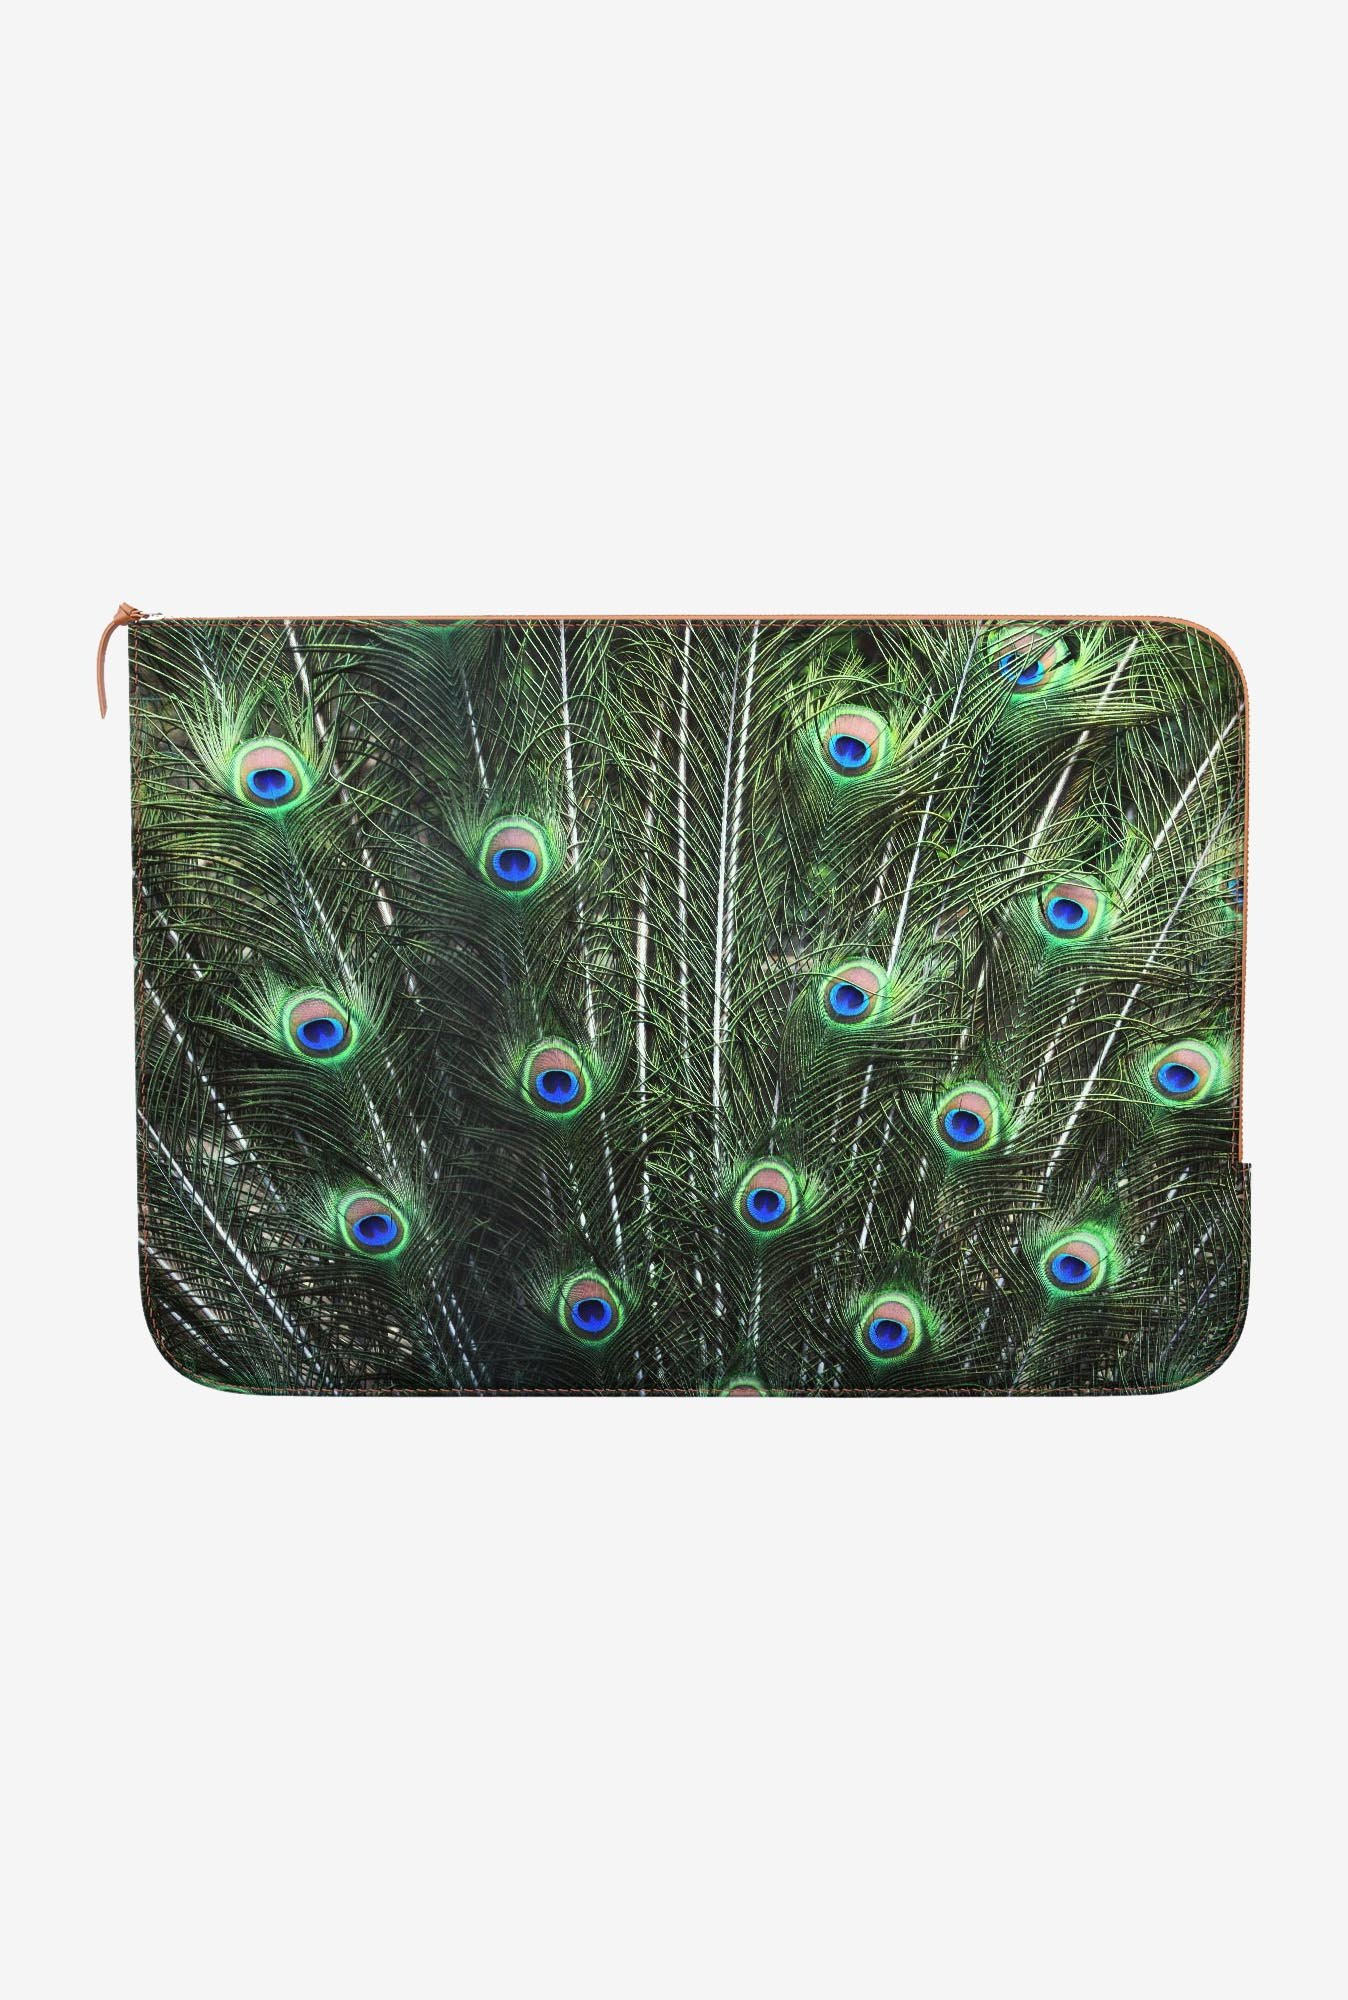 DailyObjects Glory MacBook Pro 13 Zippered Sleeve